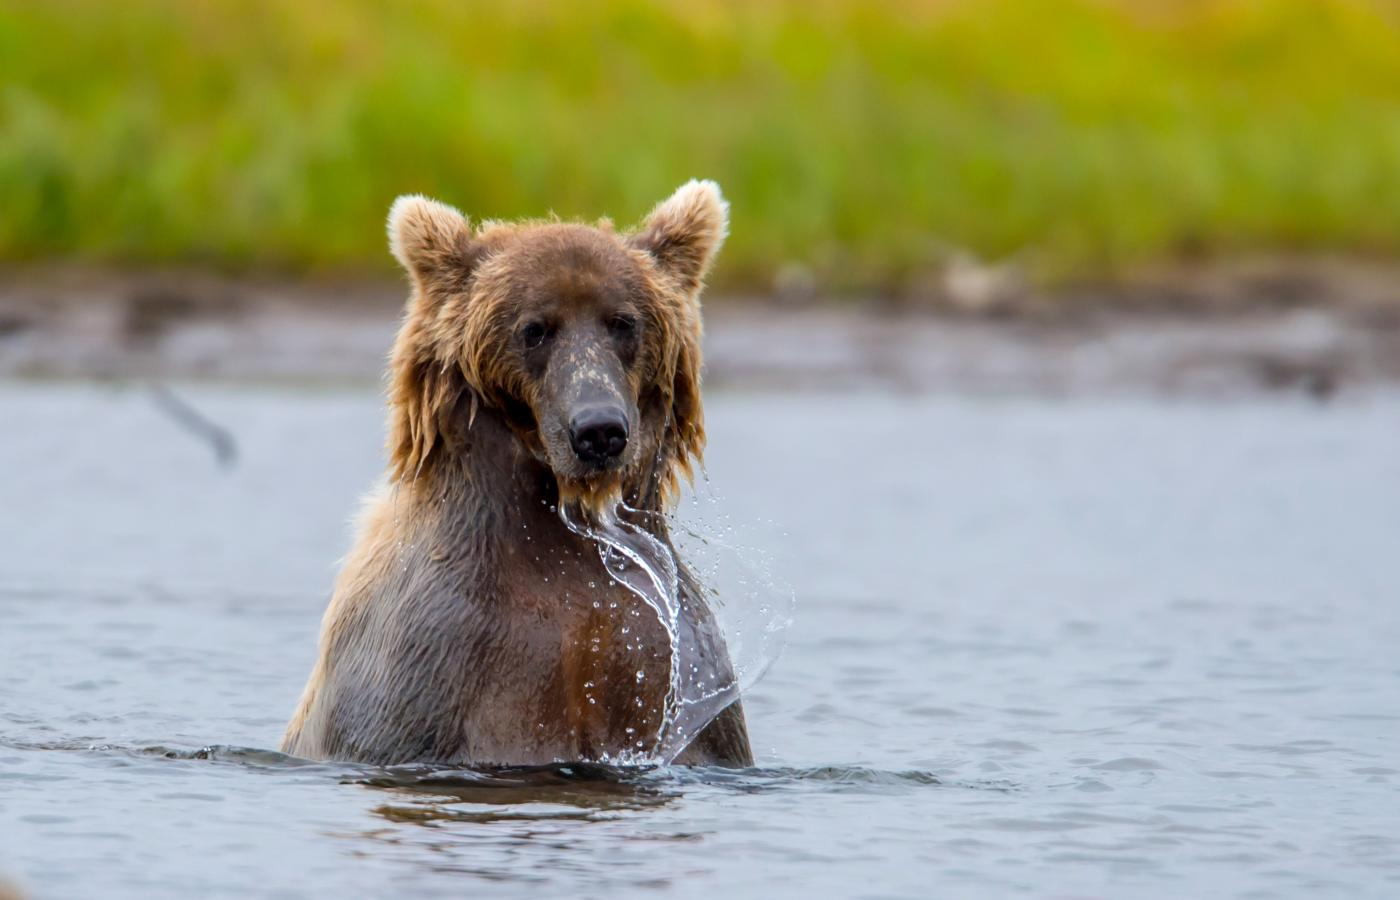 Grizzly bear standing in a pond